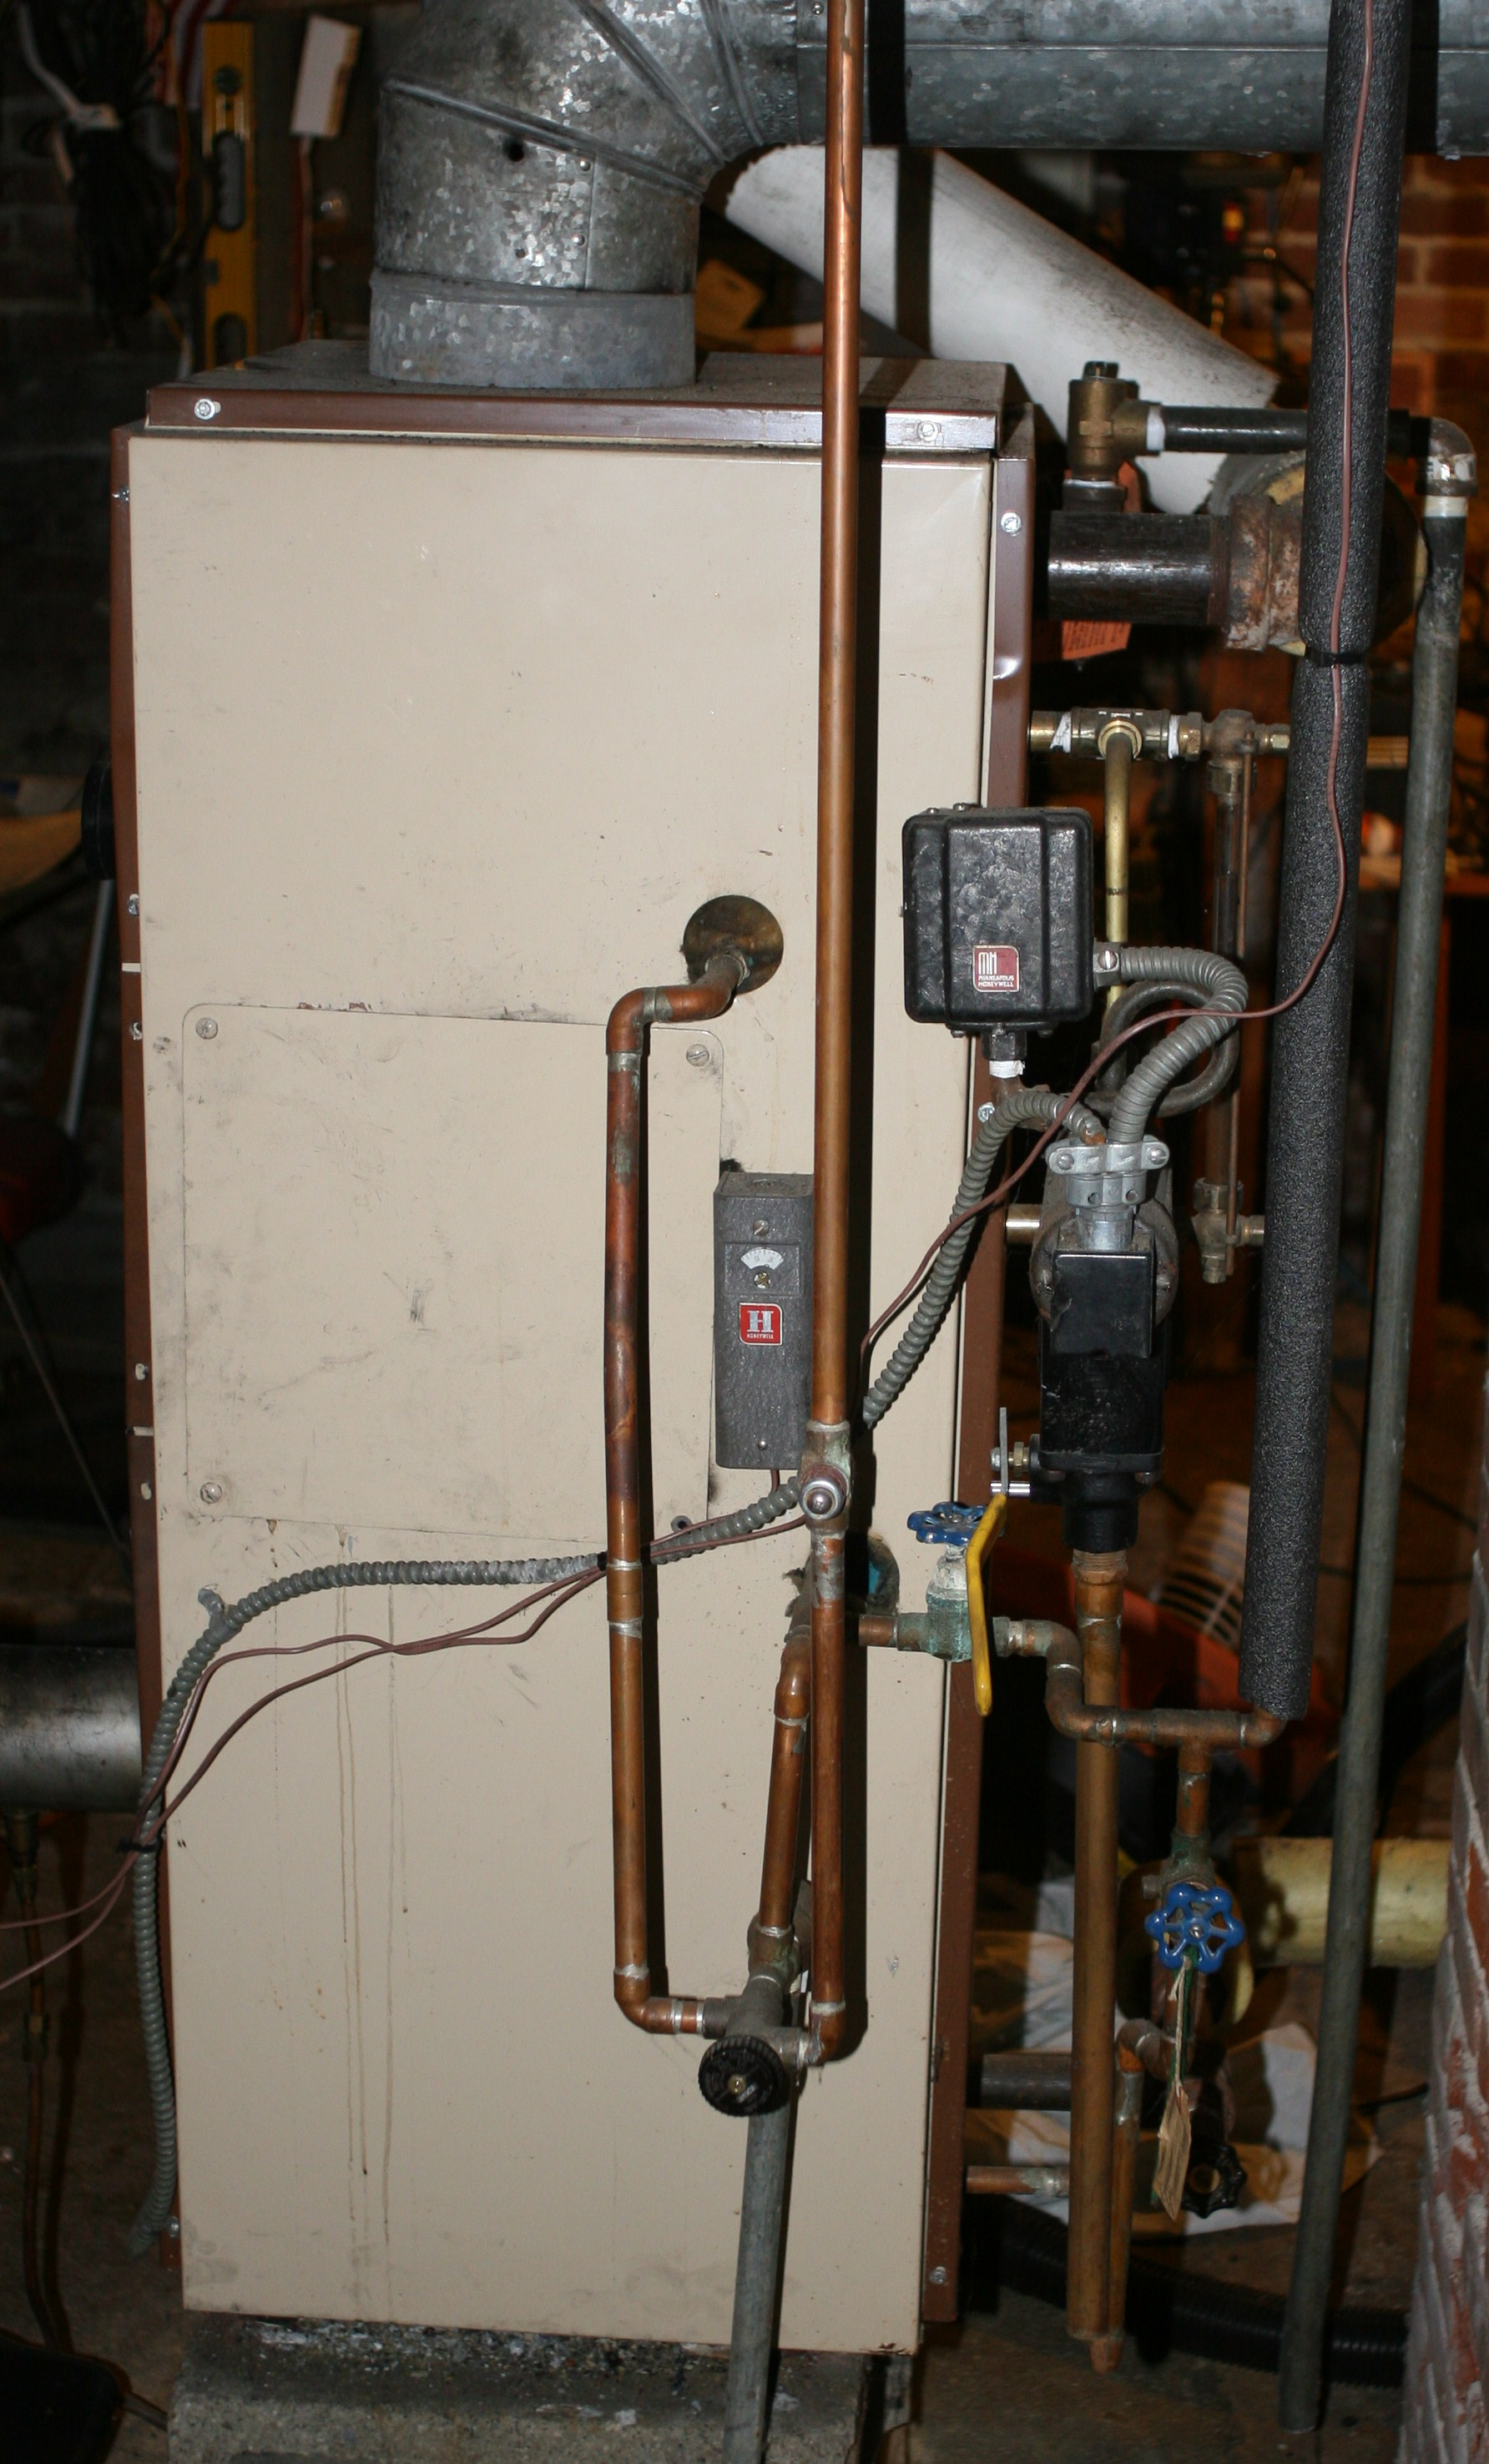 crown steam boiler wiring diagram 2002 trailblazer radio why does the service tech install a 85 gph spray nozzle